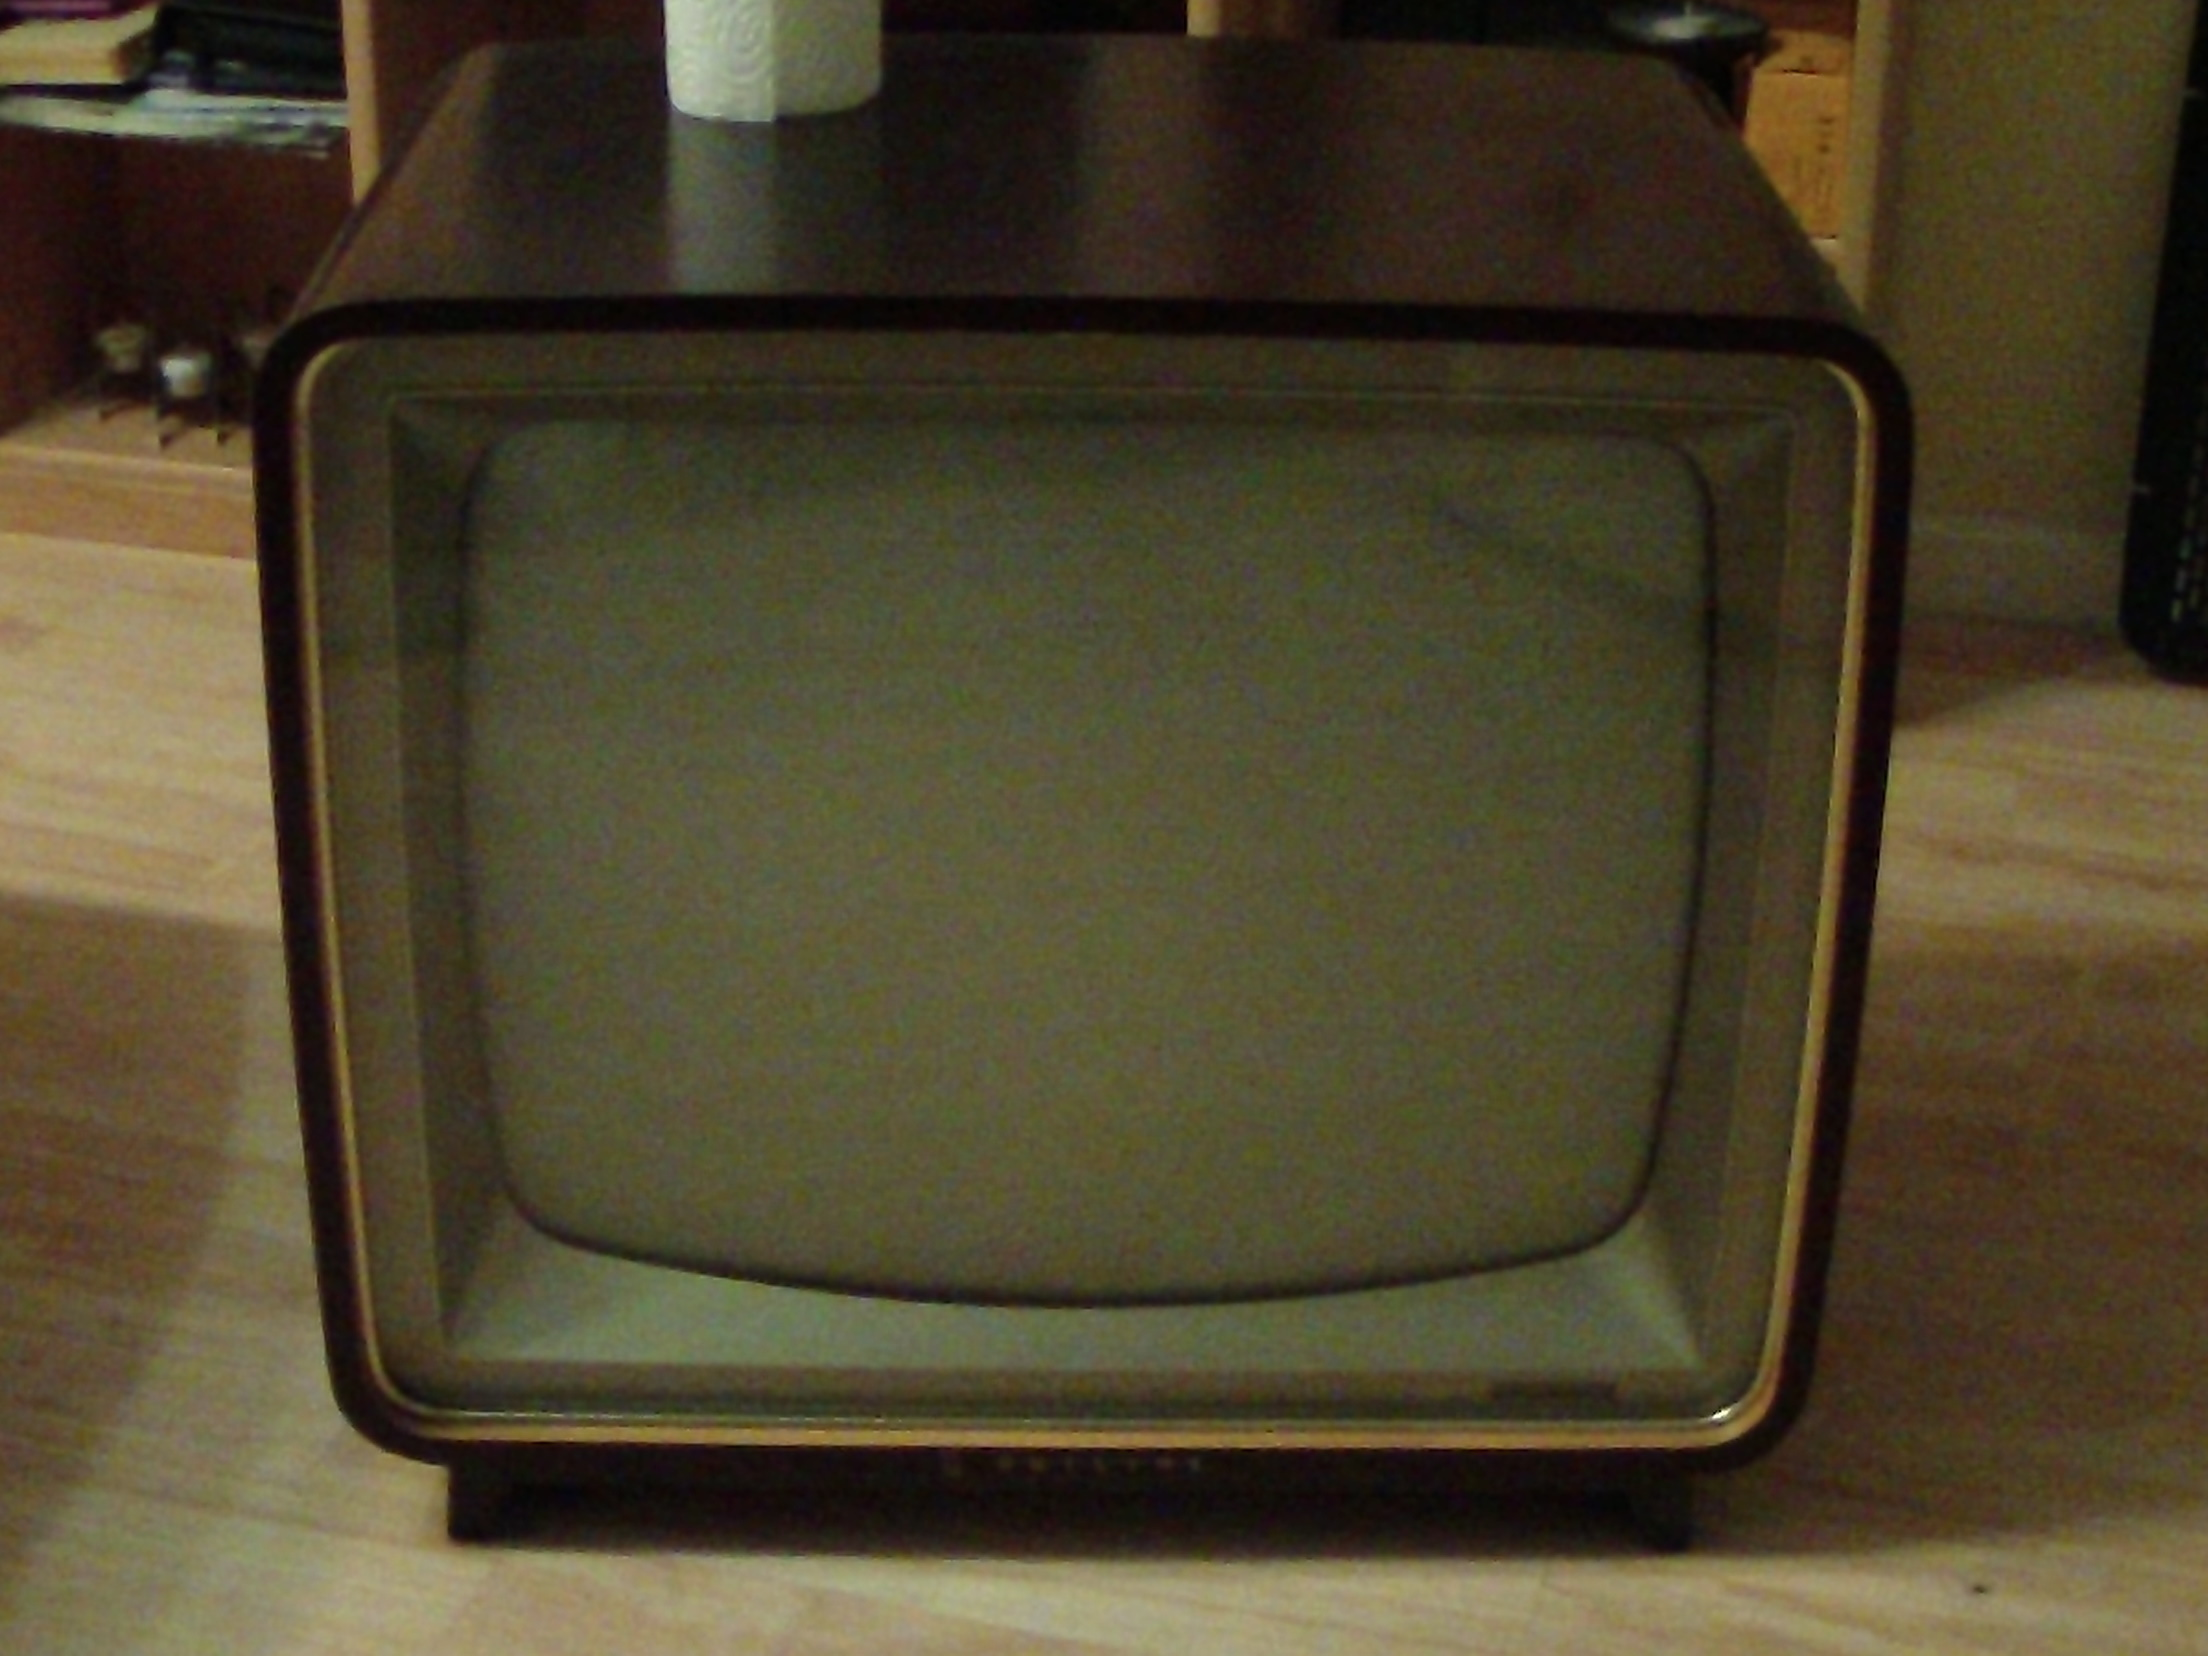 New Project: Vintage TV Coffee Table